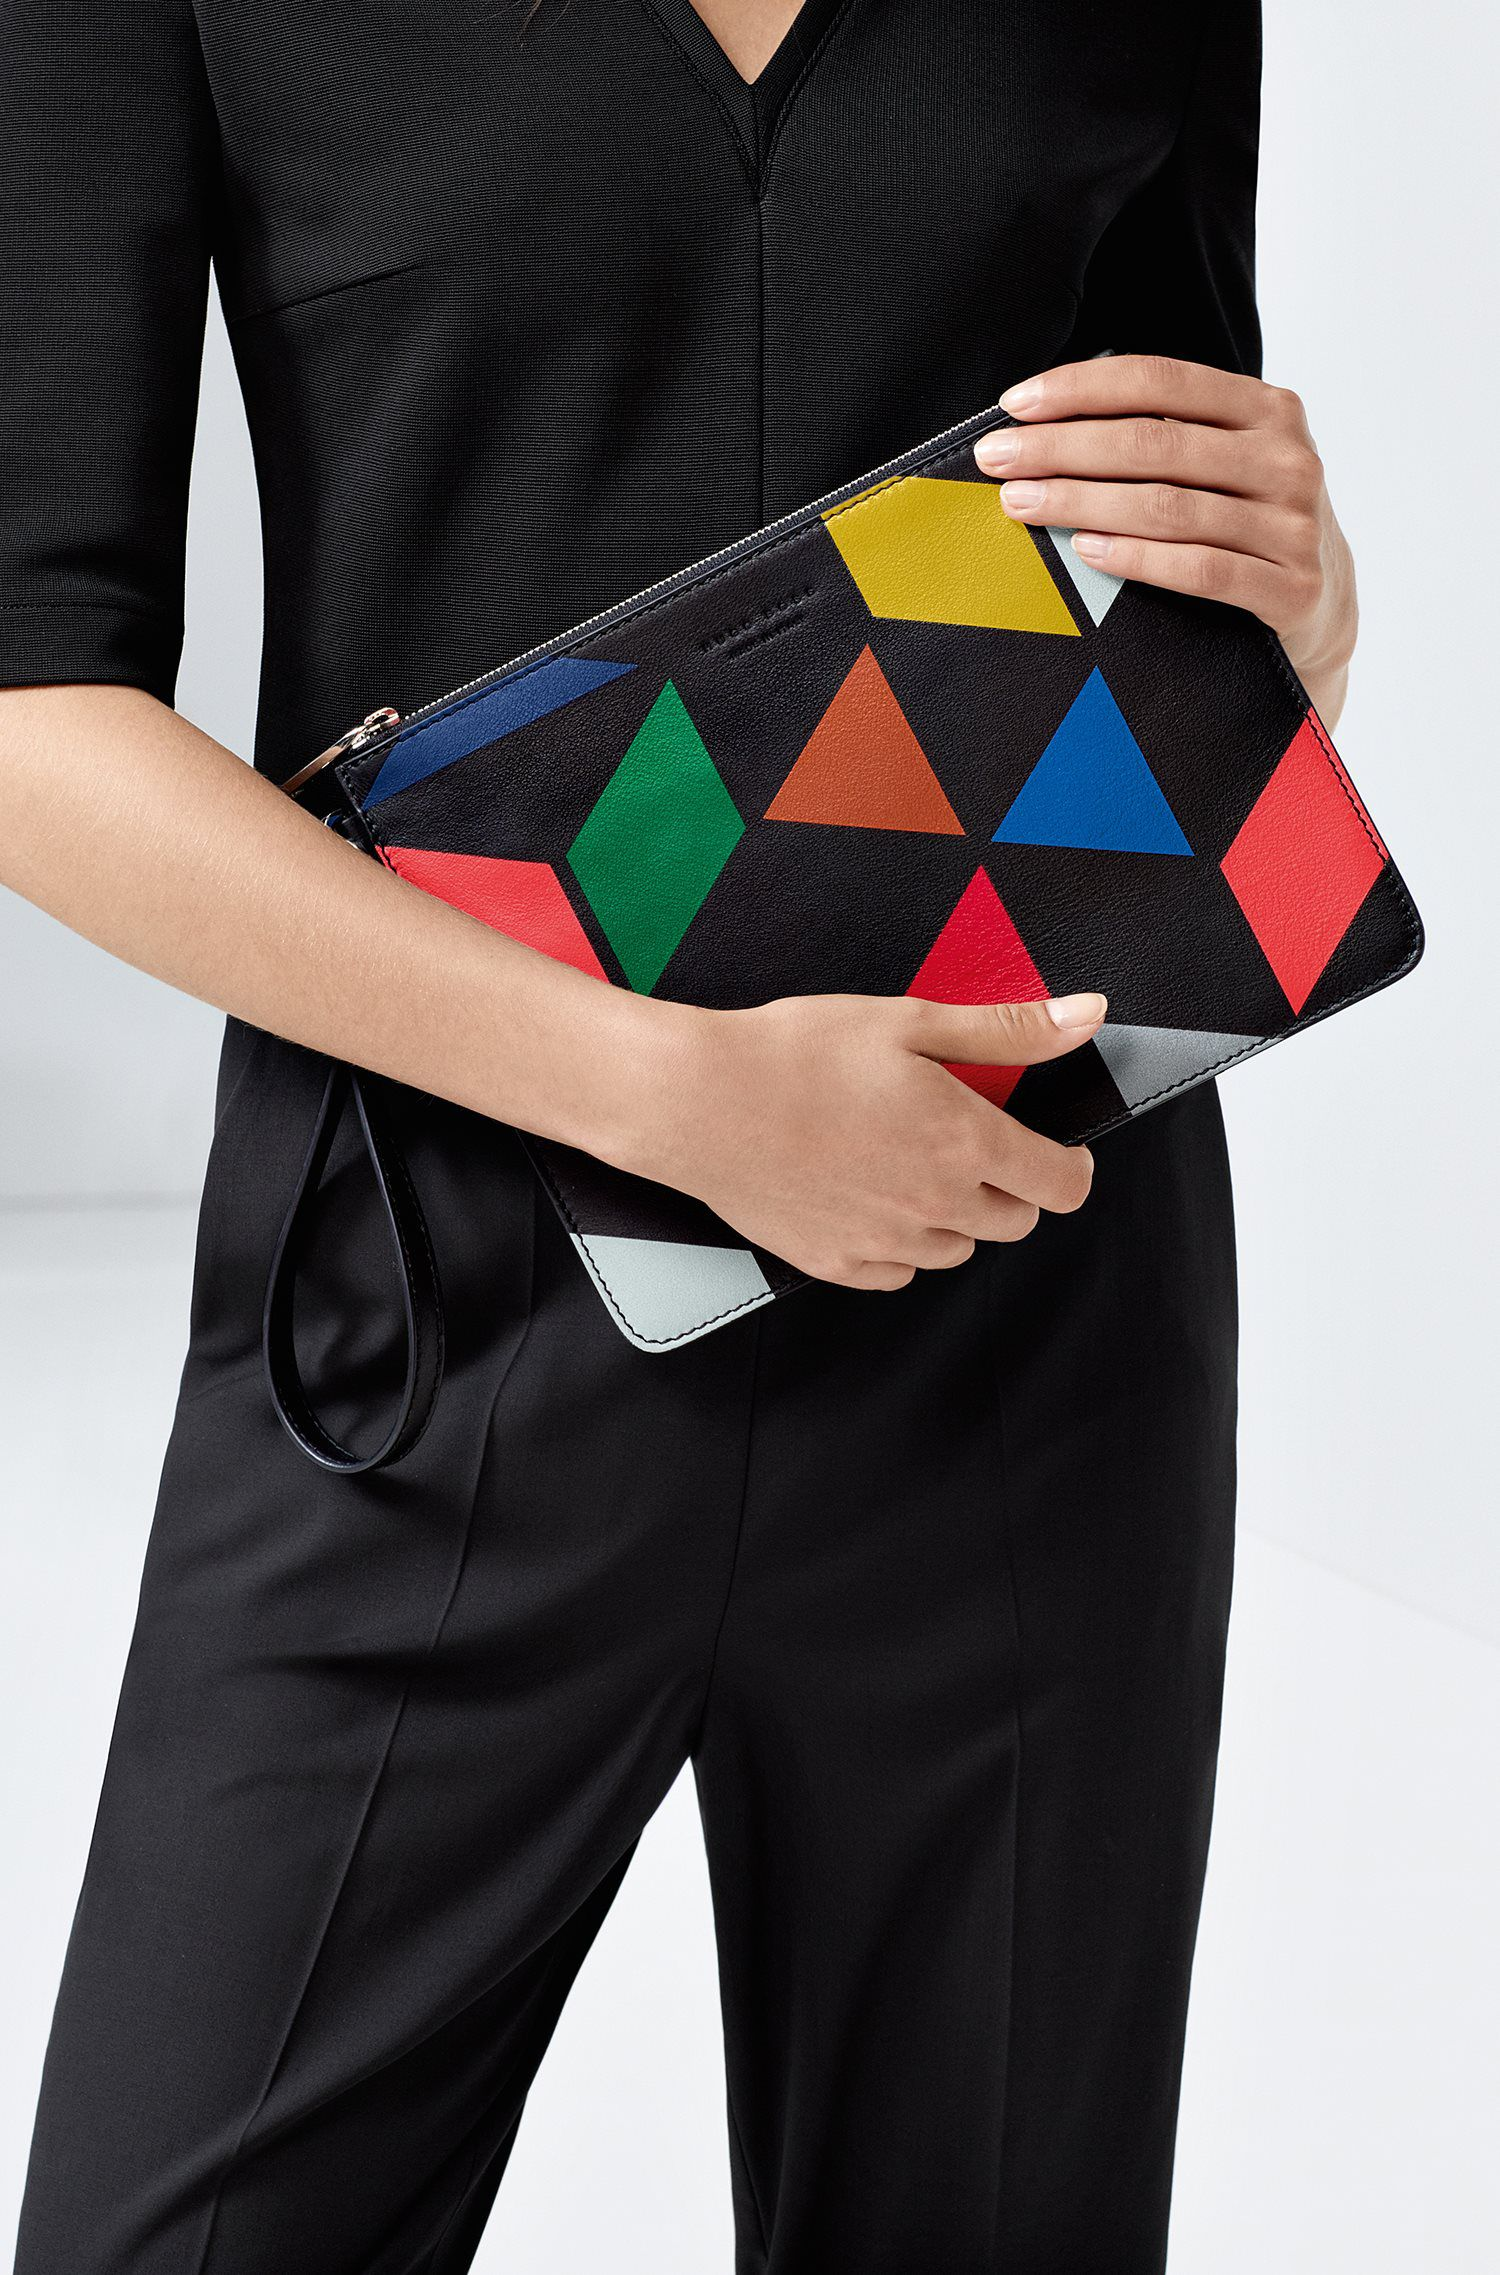 An Eames Celebration printed leather pouch